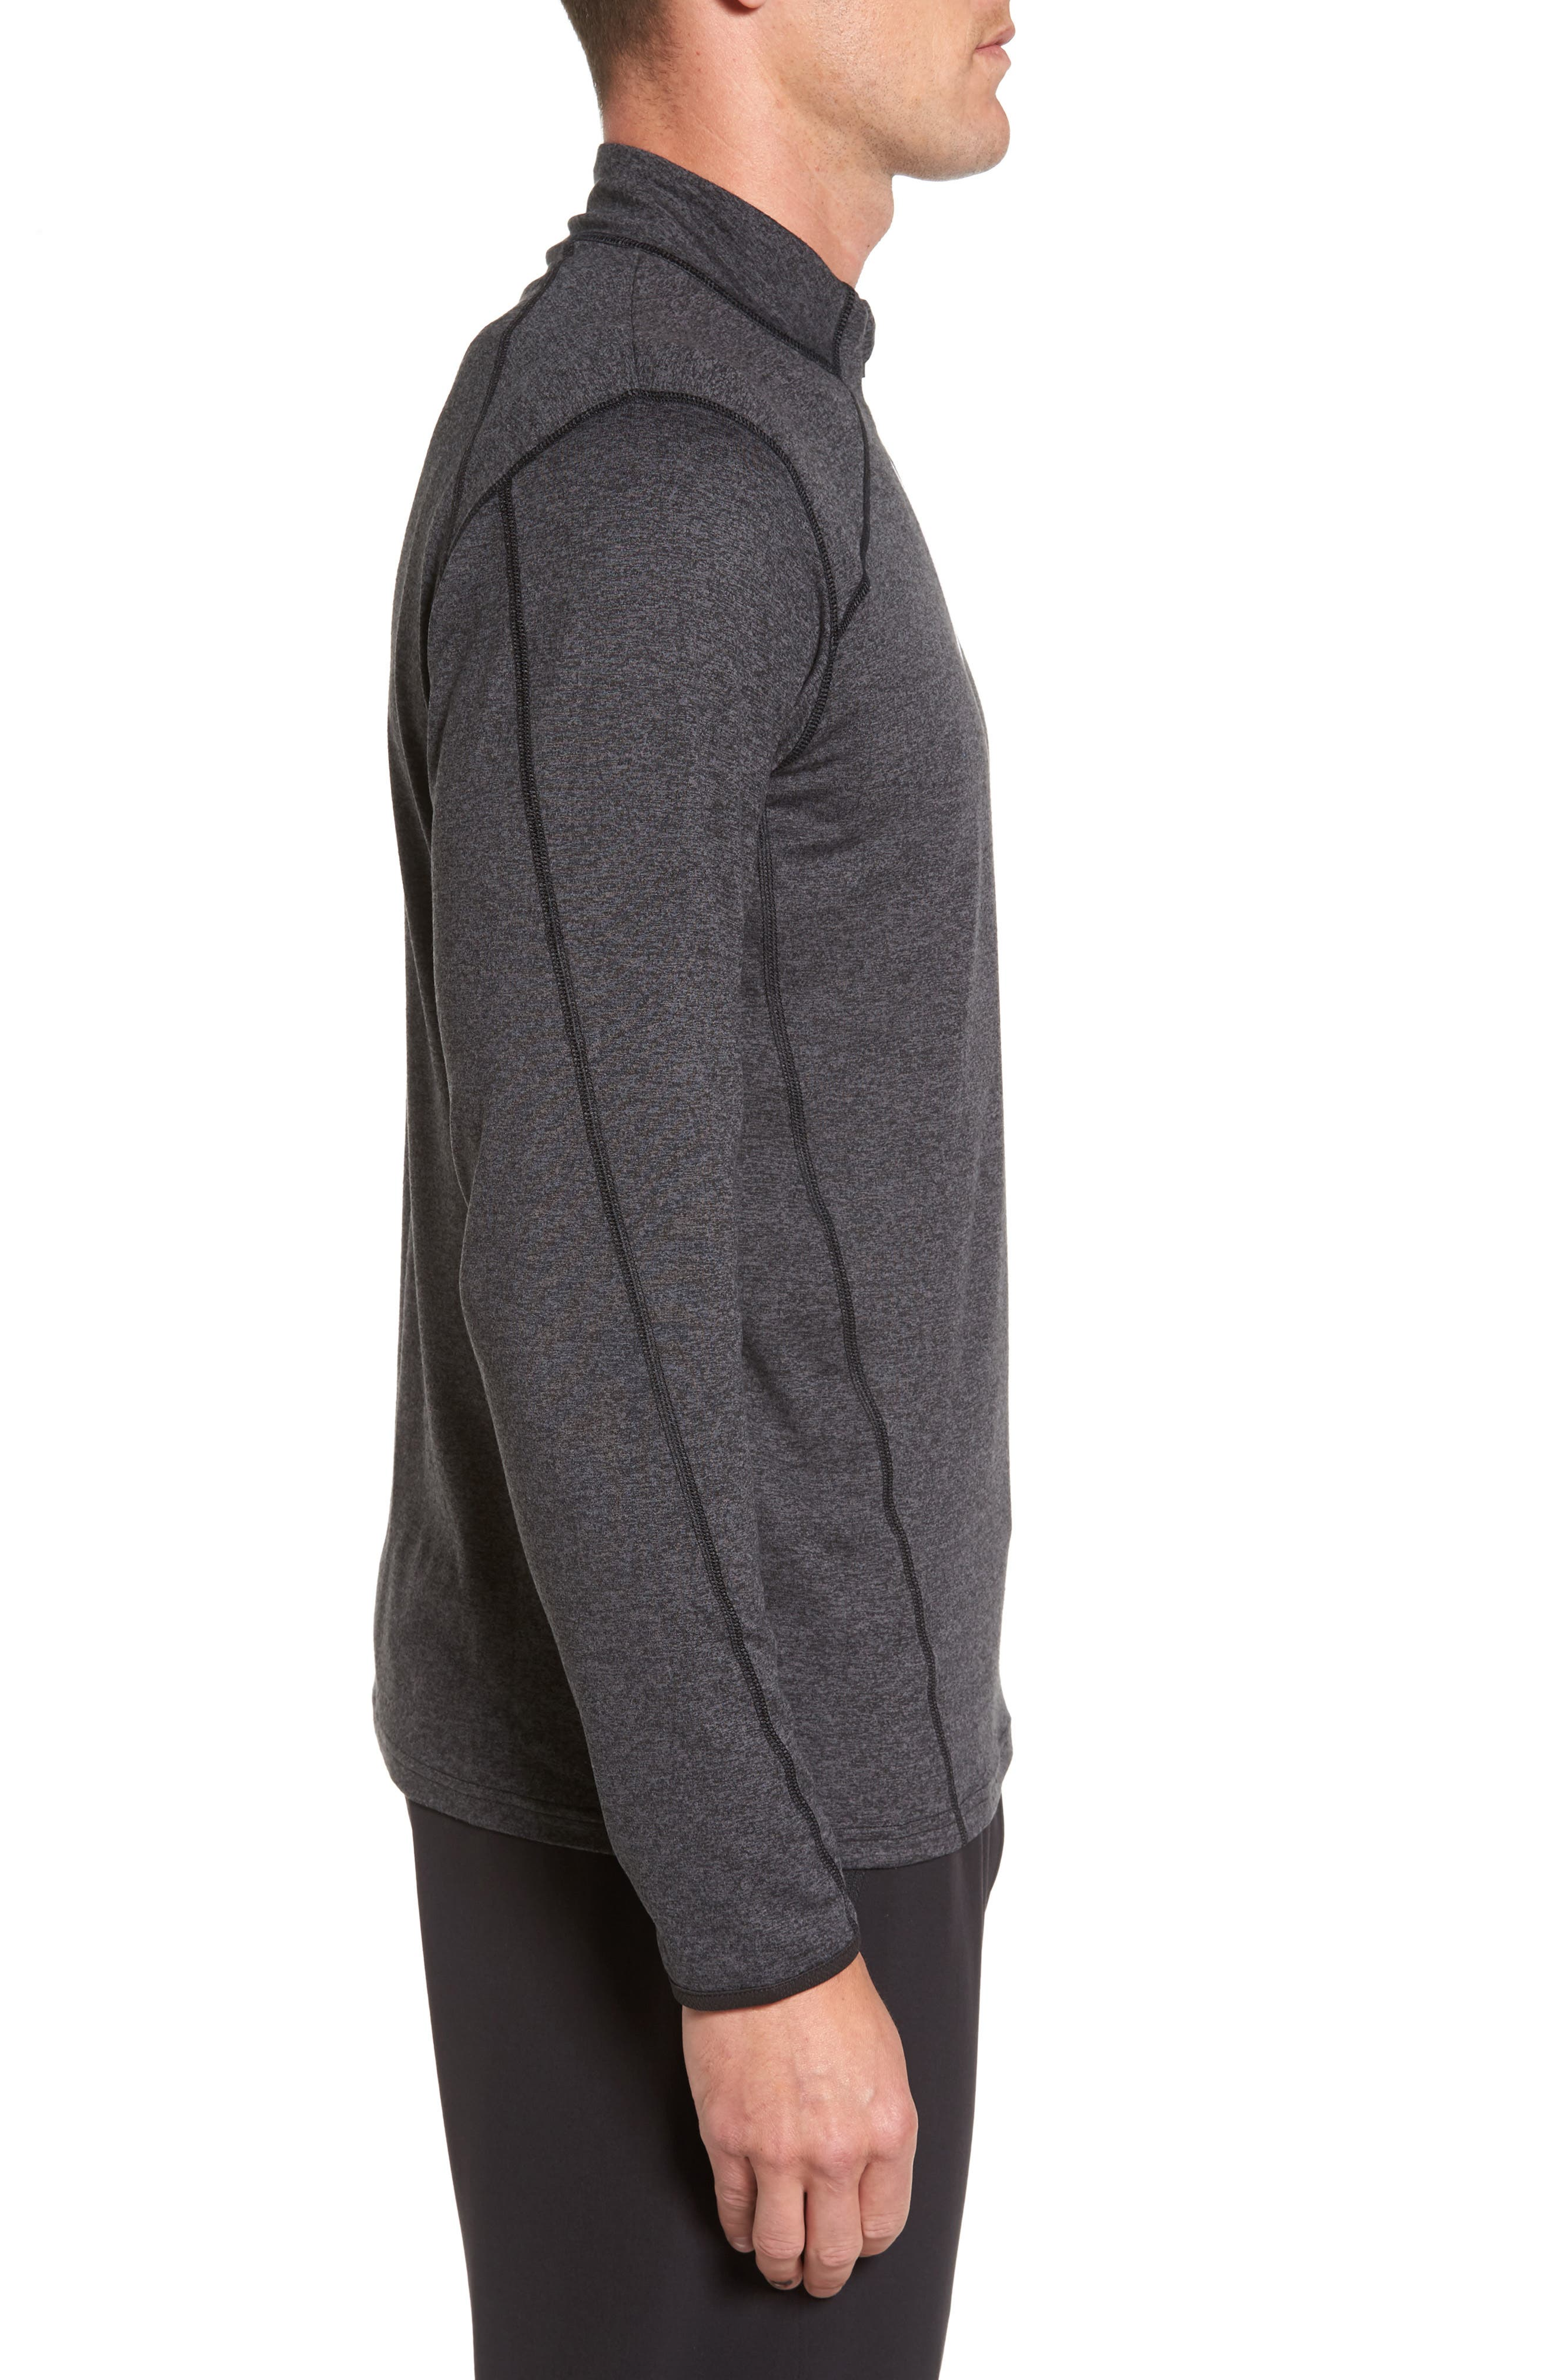 'Elevate' Moisture Wicking Stretch Quarter Zip Pullover,                             Alternate thumbnail 3, color,                             001